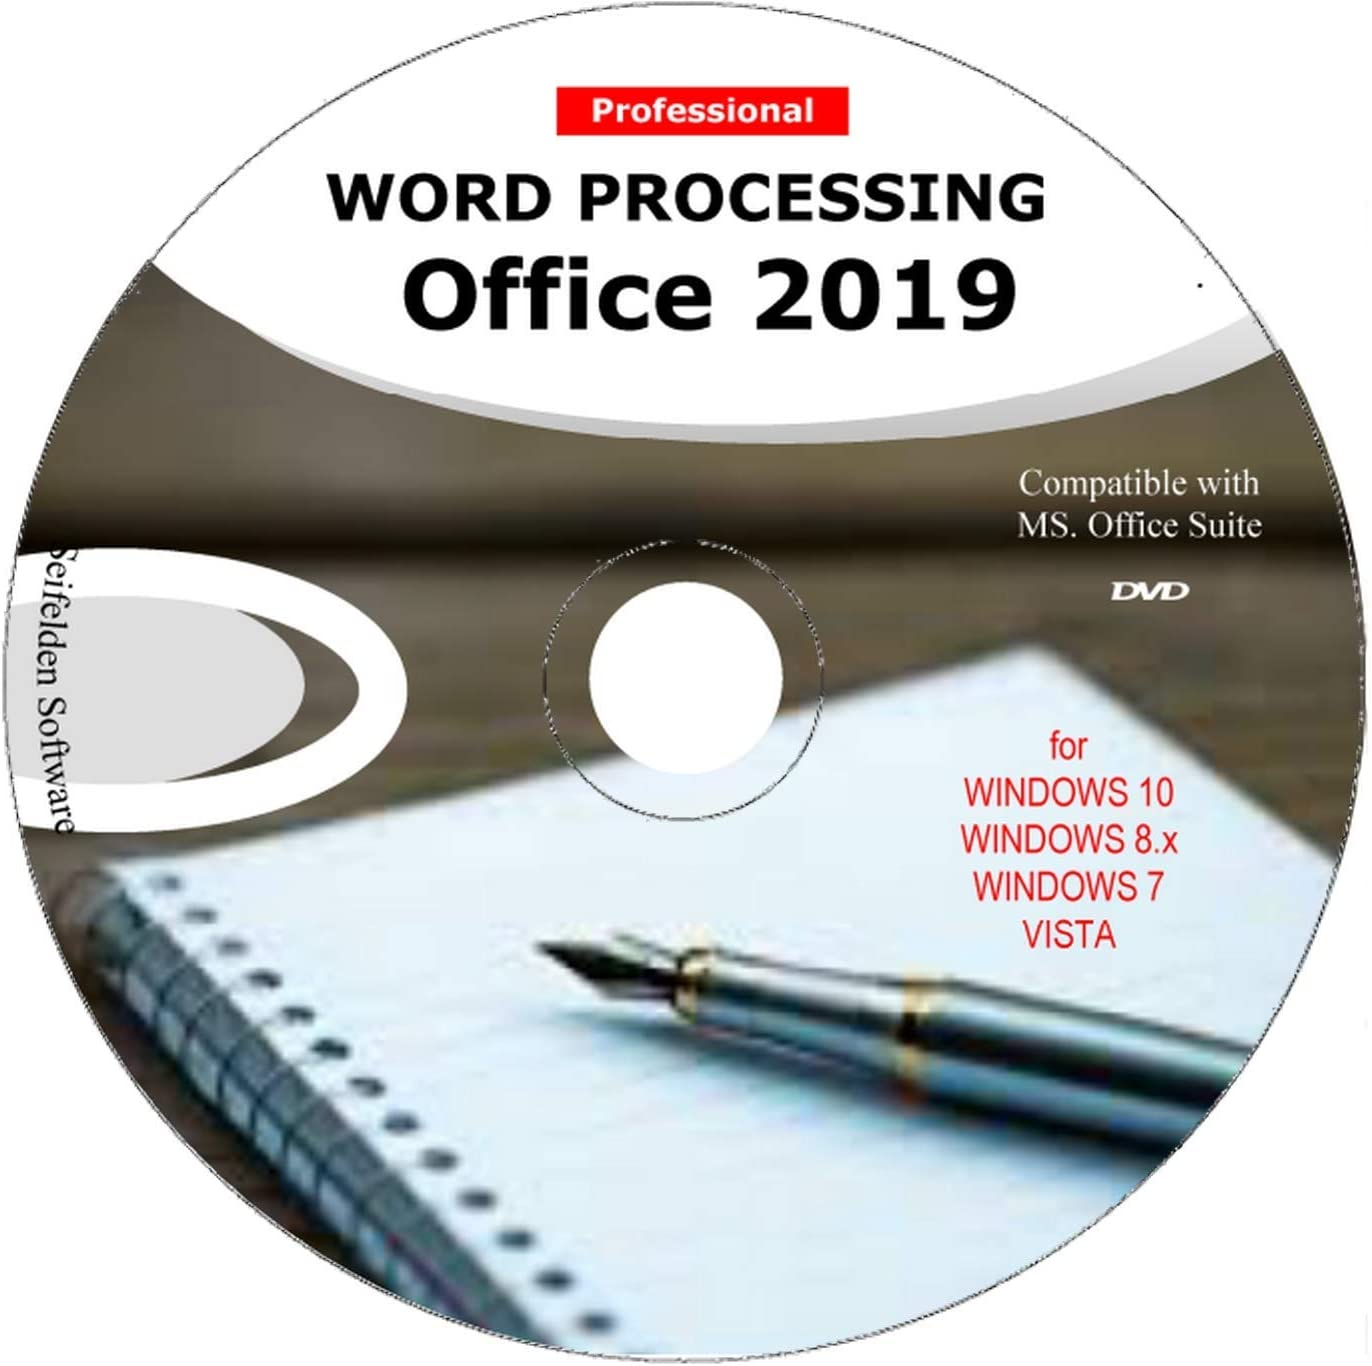 Word Processing Office Suite 2019 Perfect Home Student and Business for Windows 10 8.1 8 7 Vista XP 32 64bit| Alternative to Microsoft™? Office 2016 2013 2010 365 Compatible Word Excel PowerPoint?????